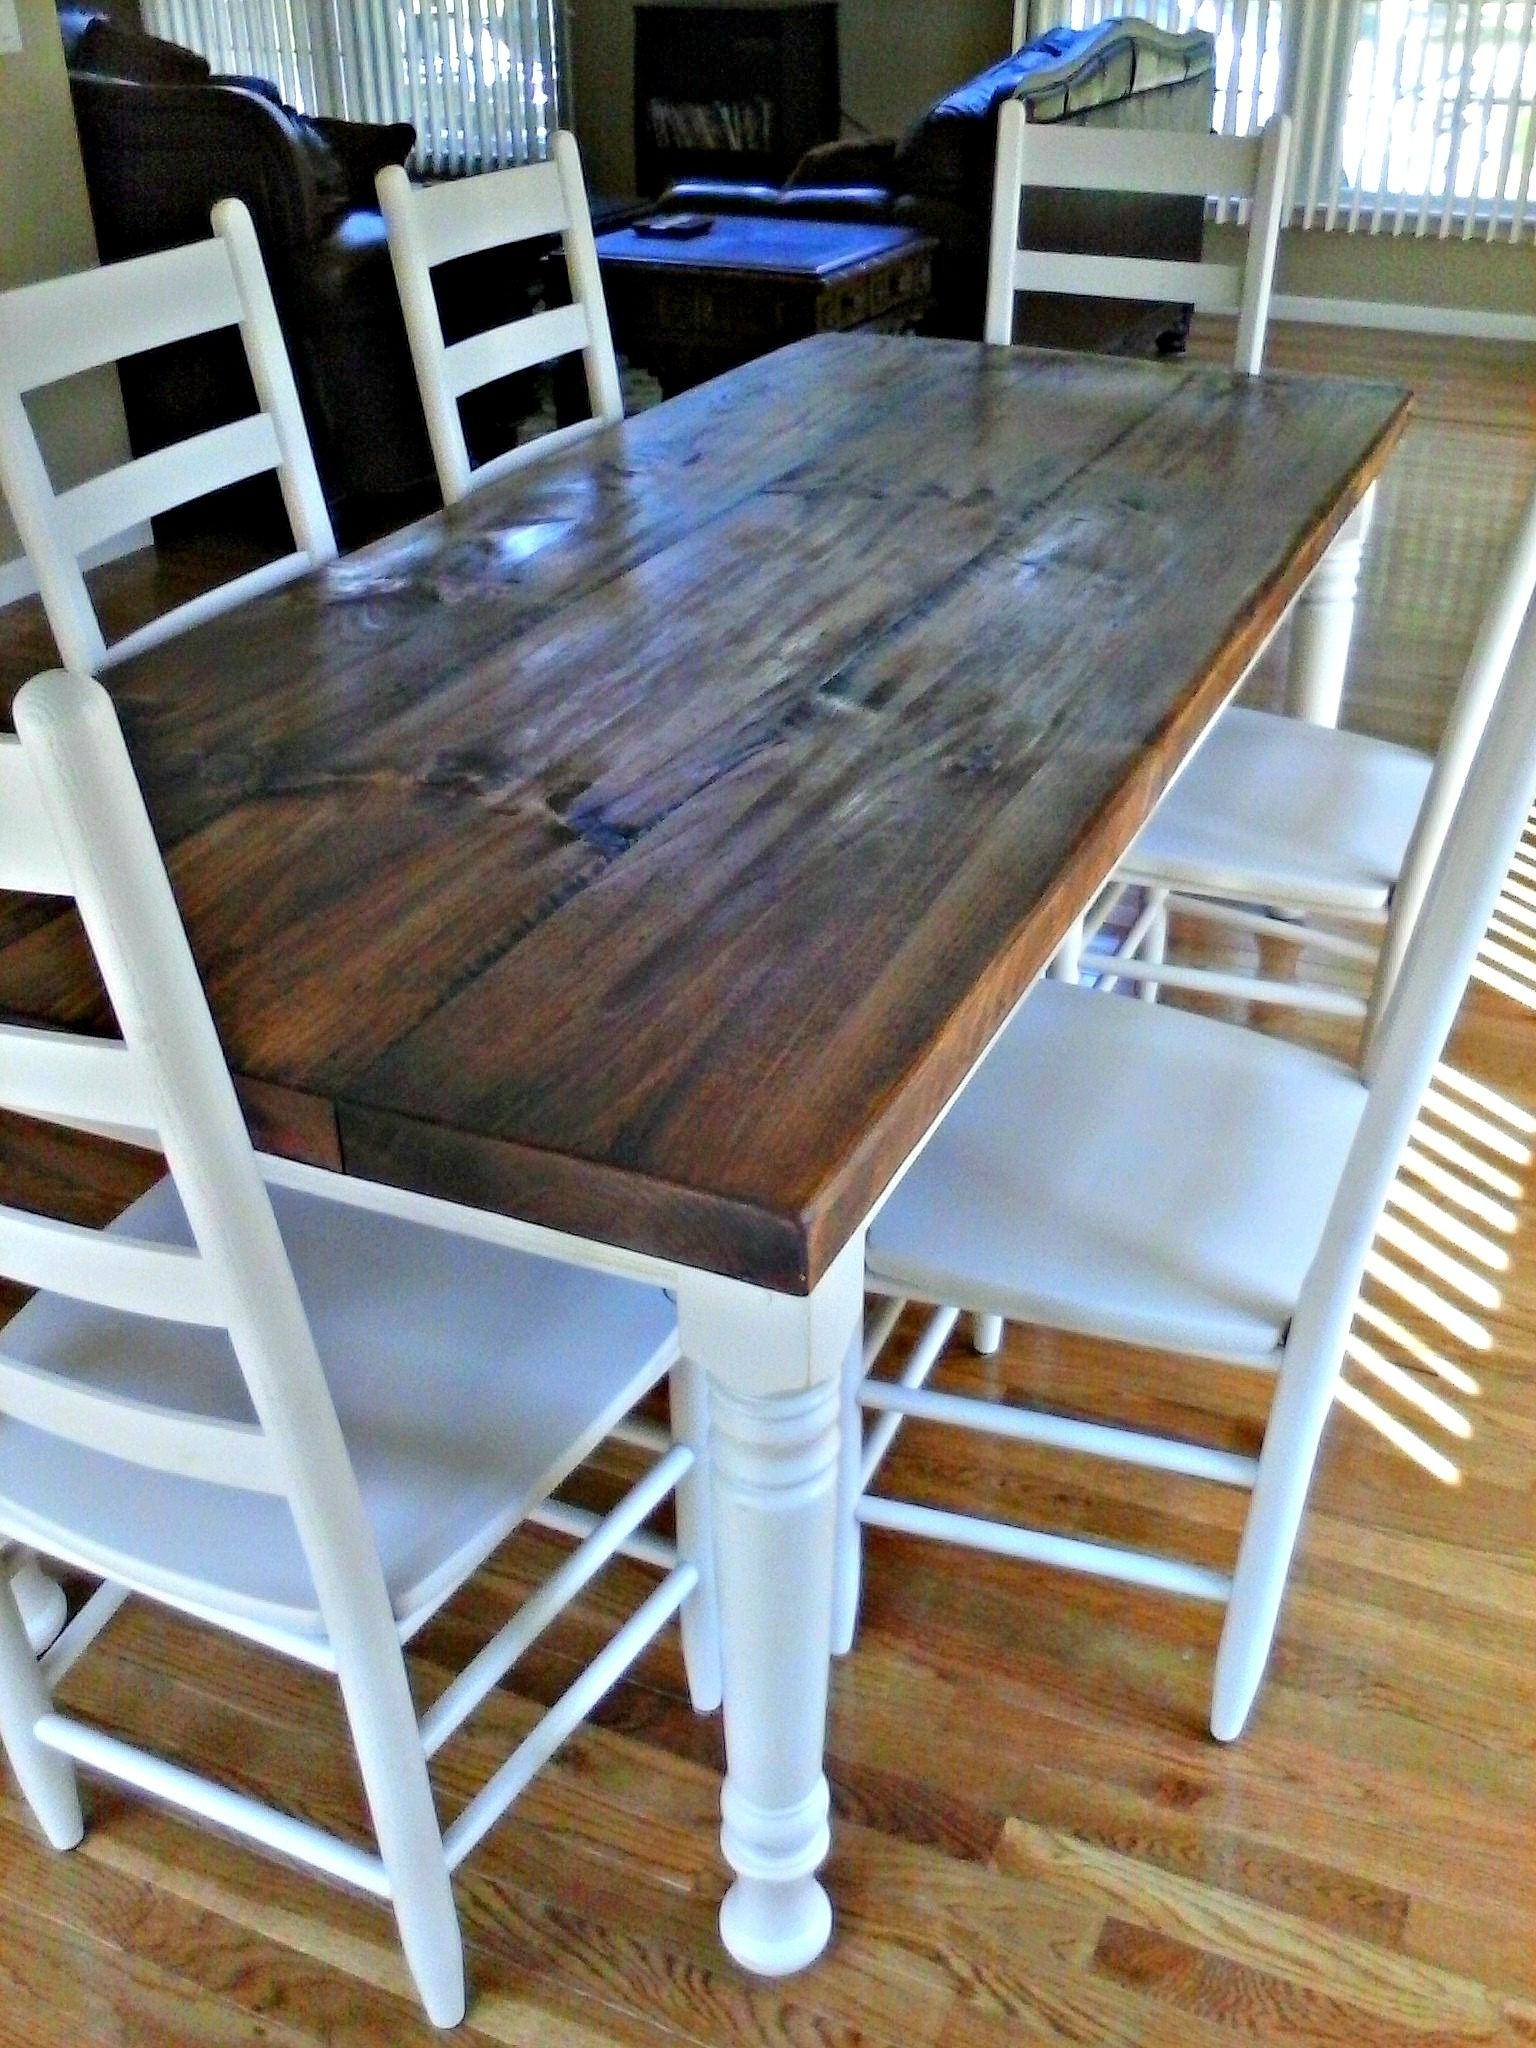 Wyatt 7 Piece Dining Sets With Celler Teal Chairs Regarding Well Known 36 X 84 Rustic Pine Farm Table With Hand Scraping, Wormholes And (View 21 of 25)